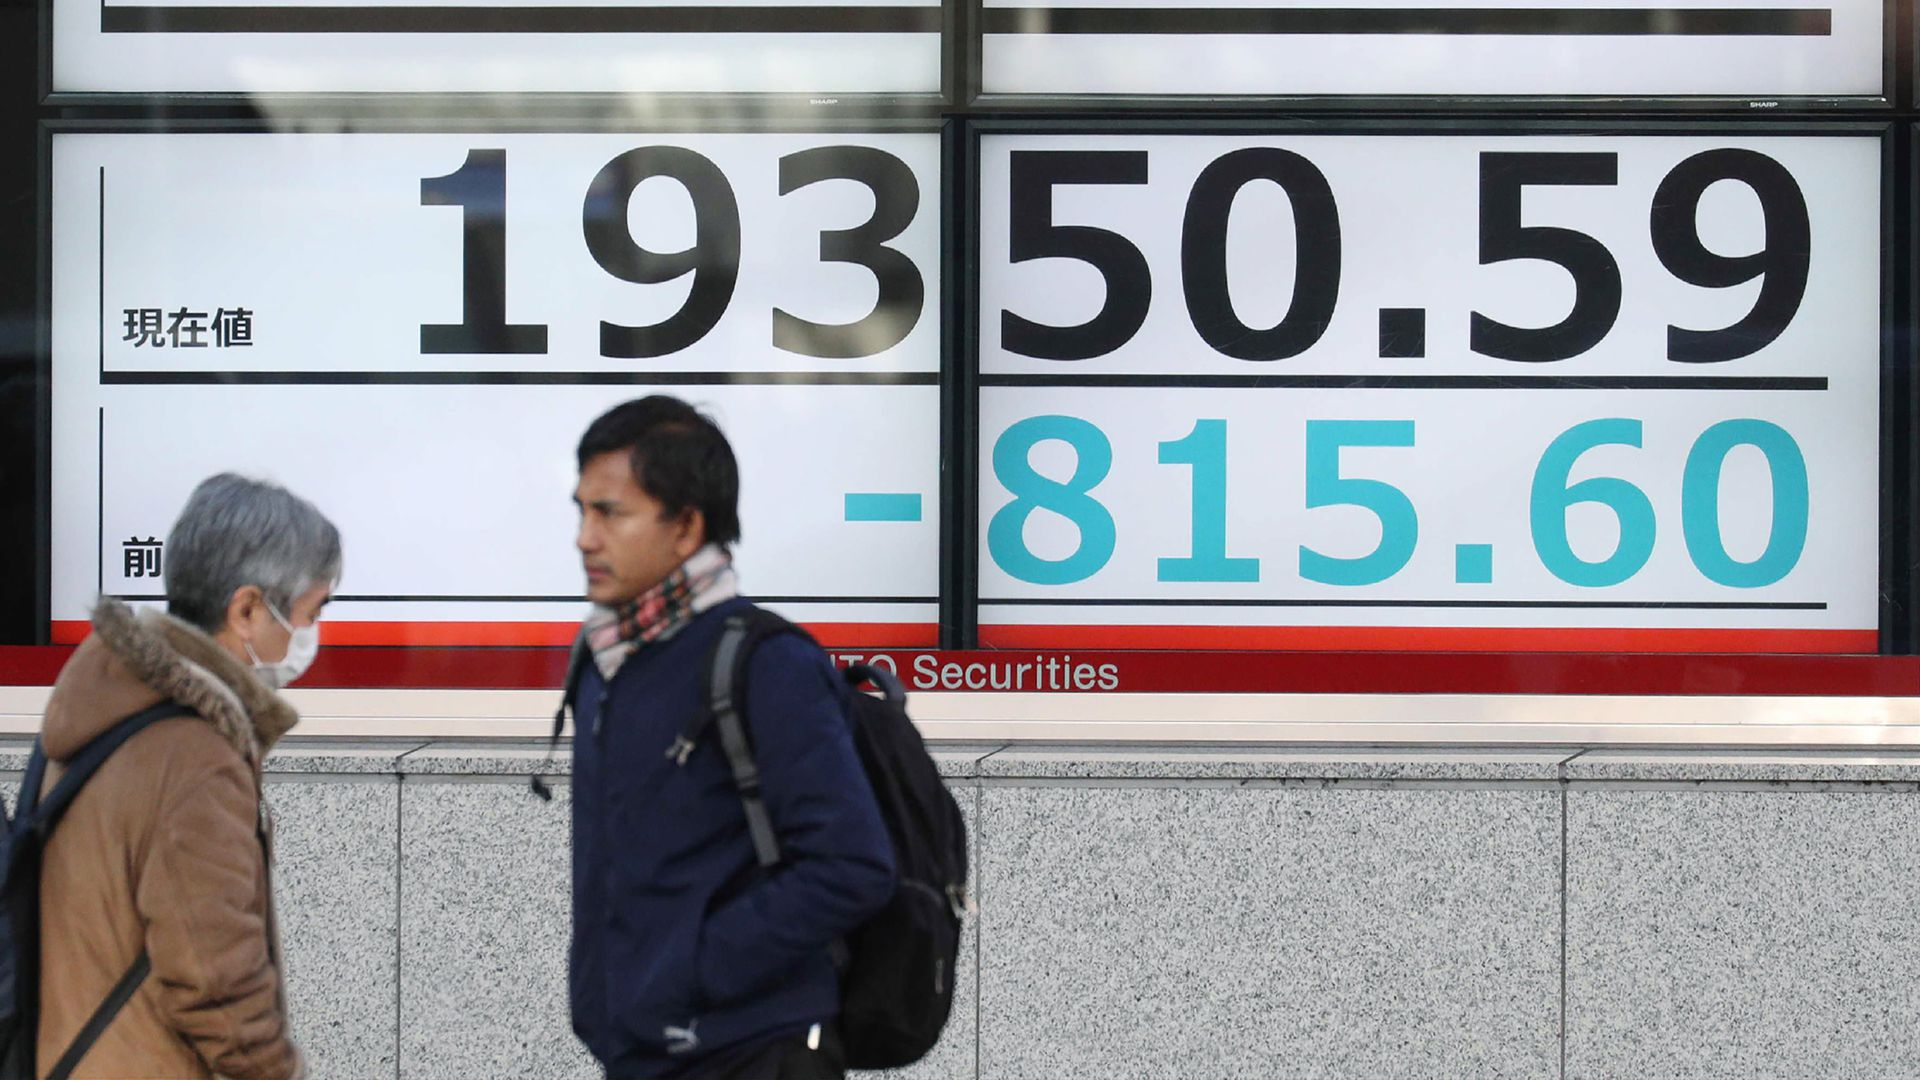 Pedestrians walk past a board showing the share price of the Tokyo Stock Exchange